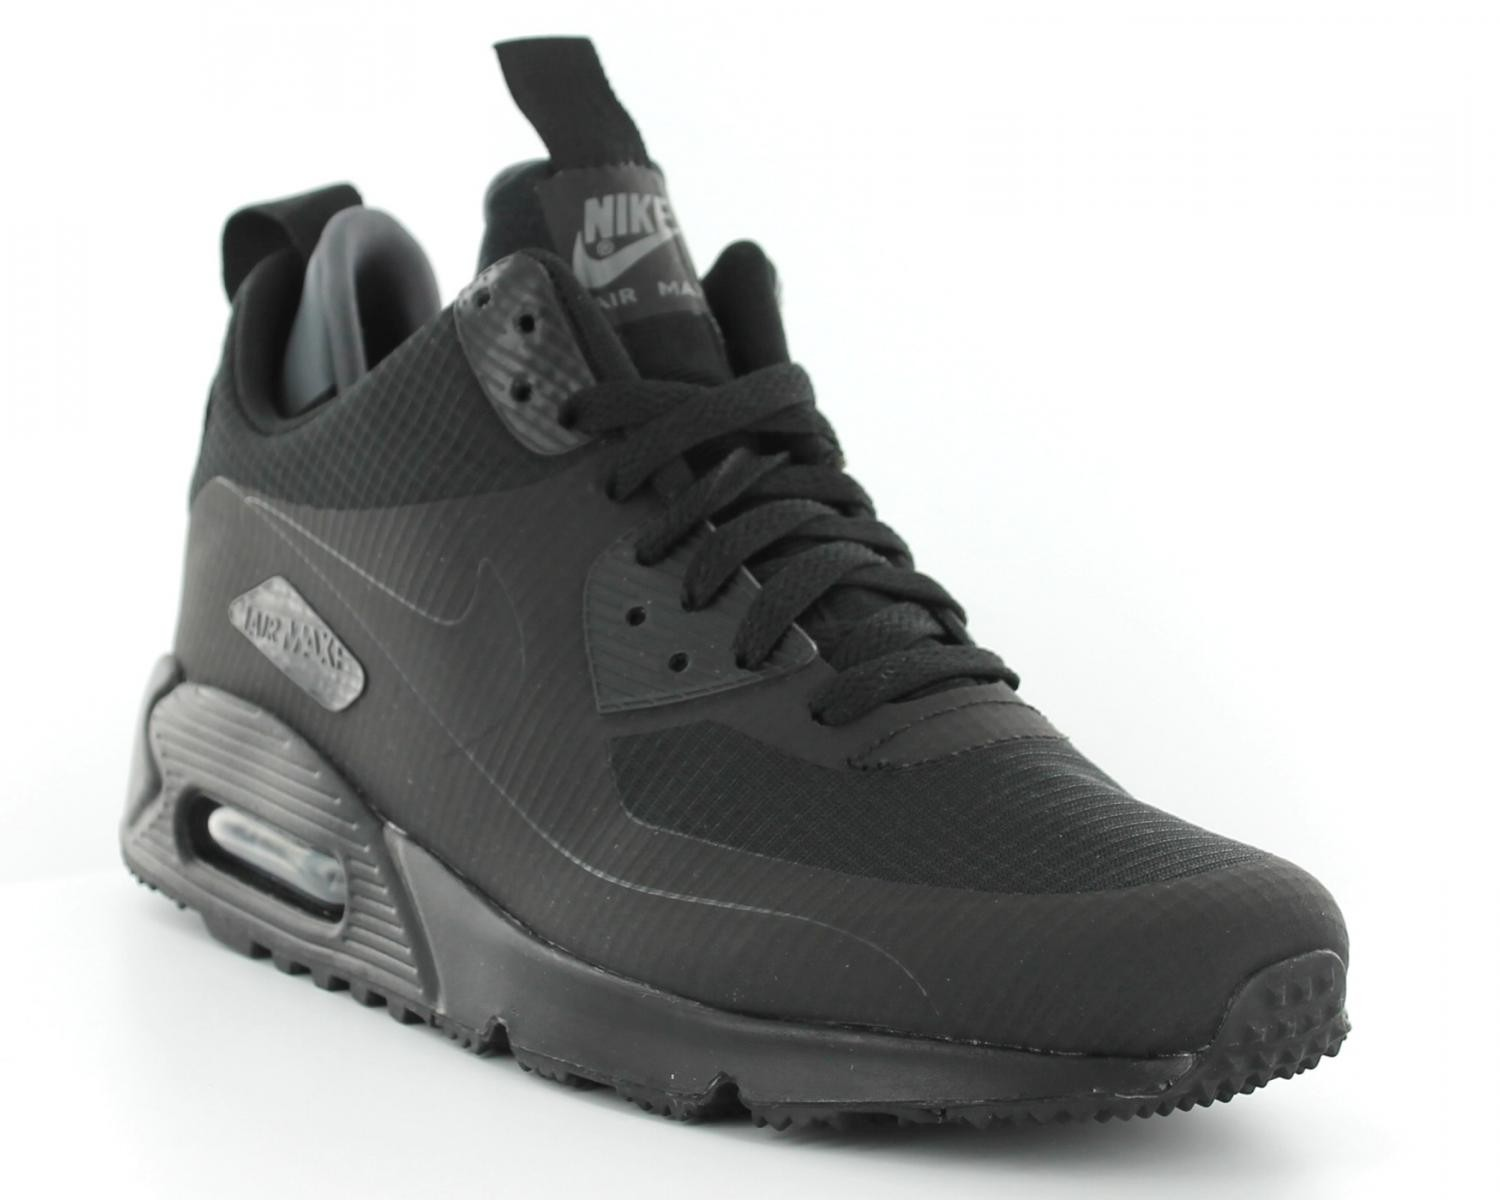 new product 0c843 bd8fe 2015 Le moins cher-Nike Sportswear Air Max 90 Mid Winter - Core blue( Pas  Cher Nike Air Max 90 Mid Winter (Noir Noir) Noir Noir-Noir 806808-002 Prix.  Vente .